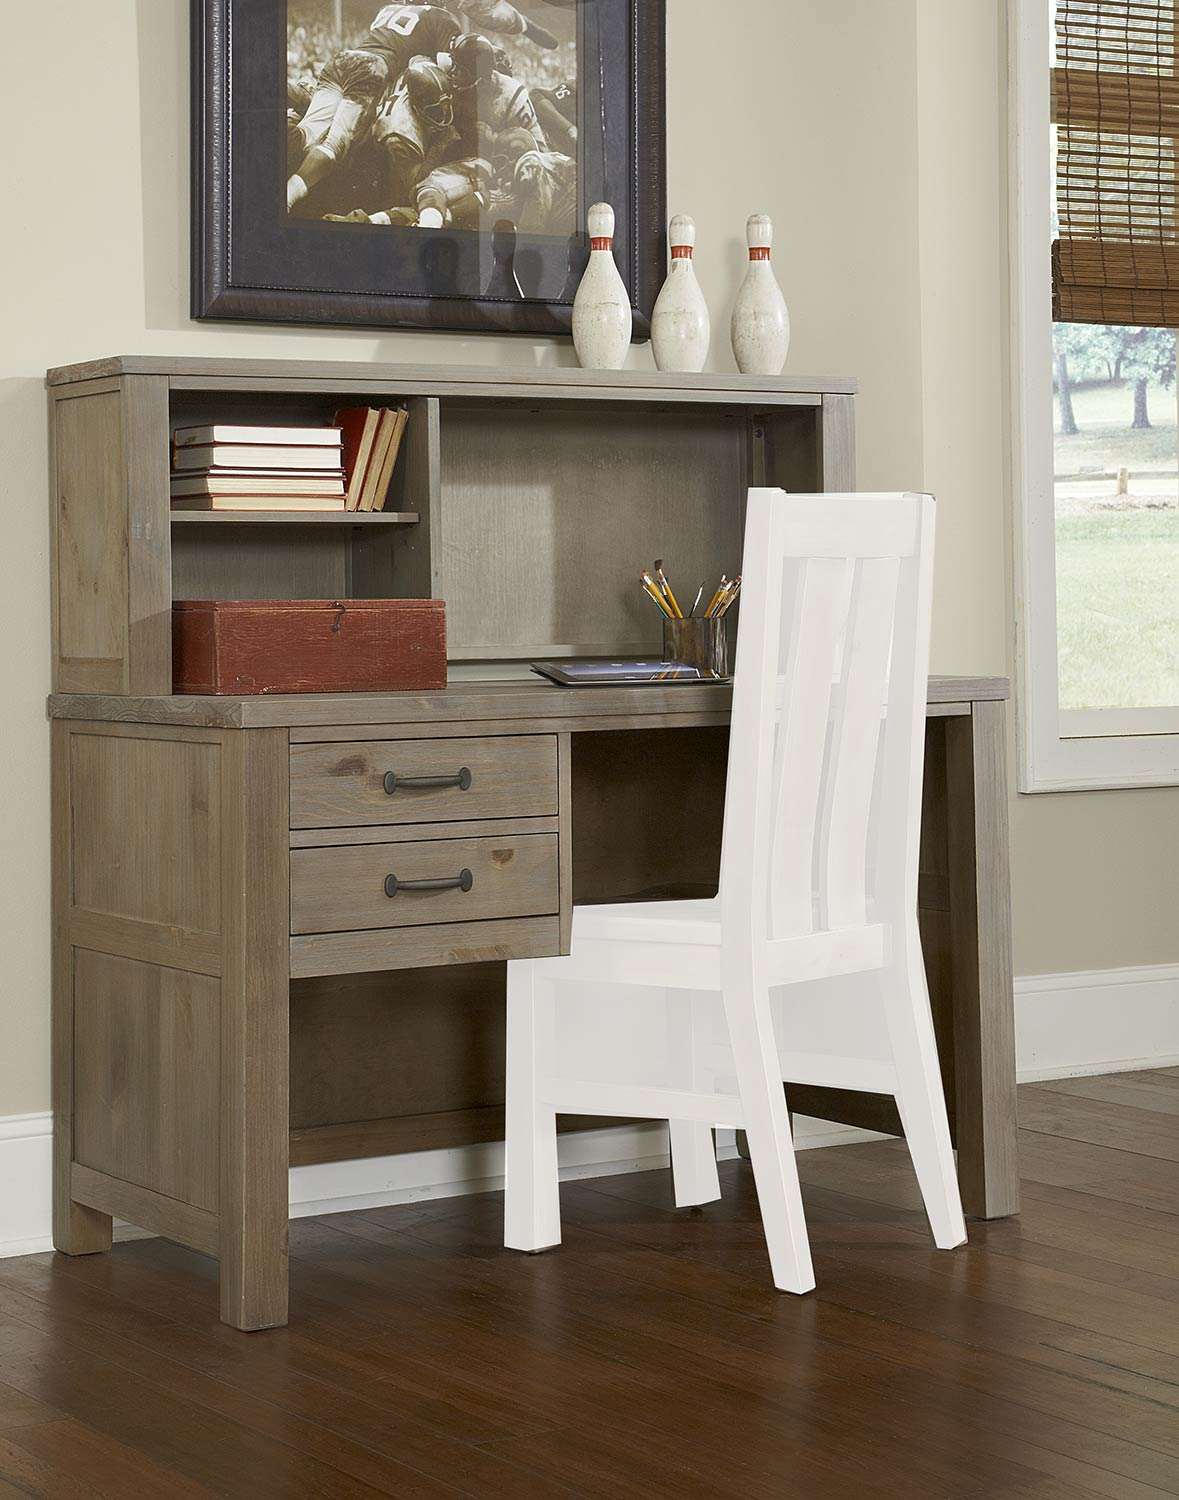 NE Kids Highlands Desk with Hutch - Driftwood